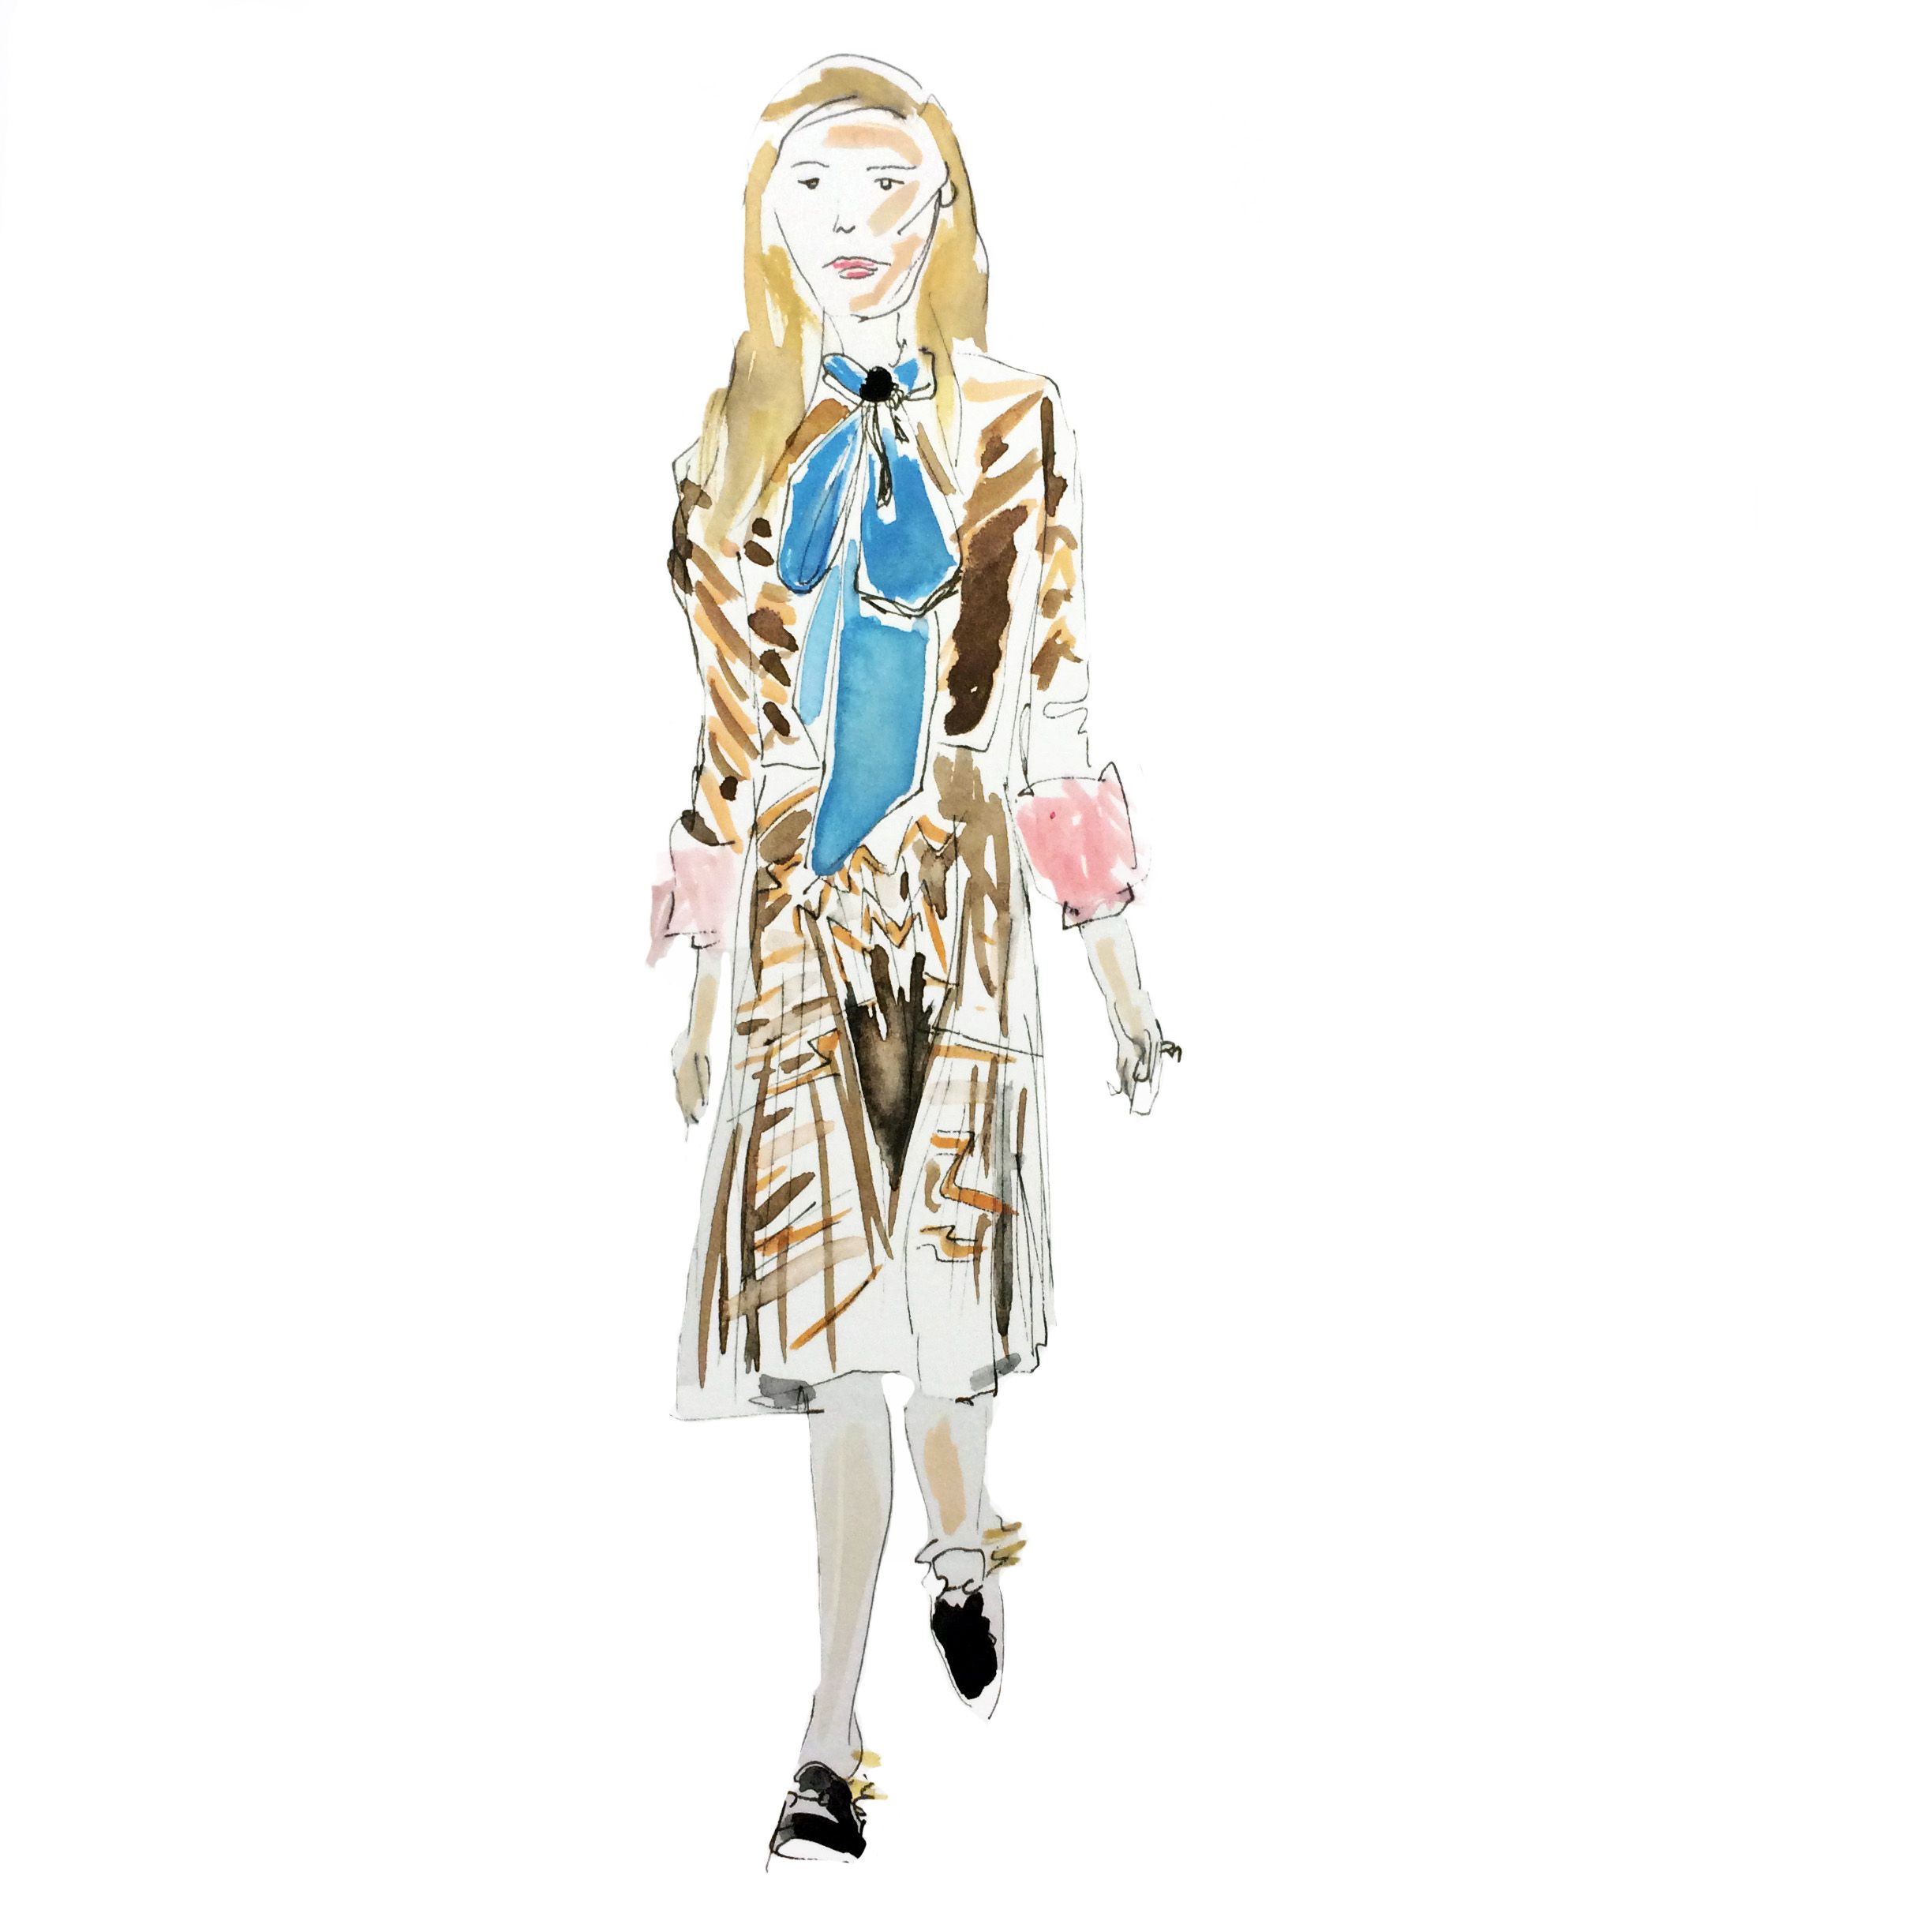 Gucci, Autumn/Winter 2015-16, Ready-To-Wear. Illustration by Alexandra Constantine.